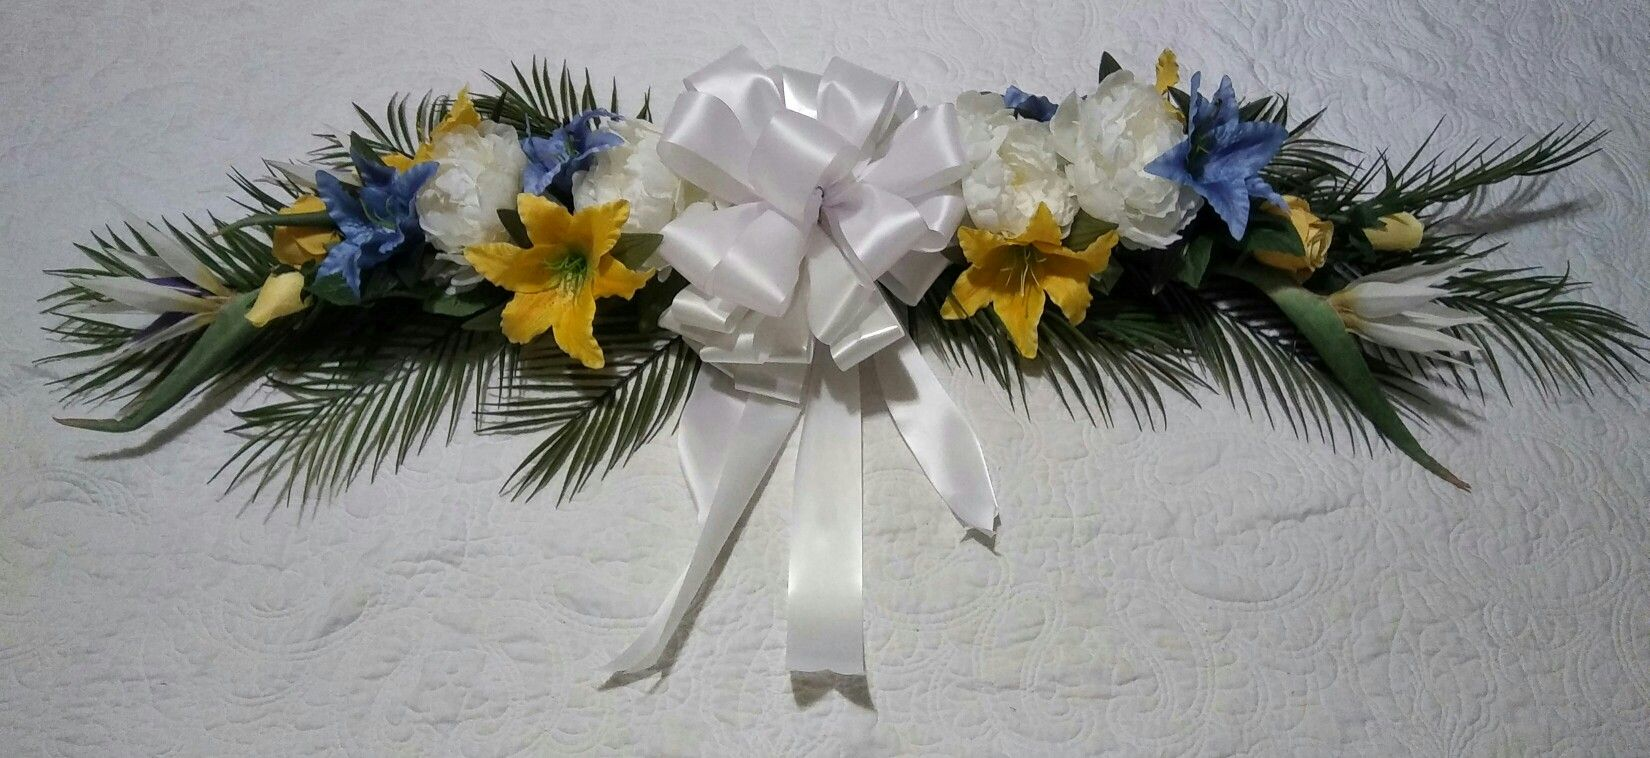 BIRDS OF PARADISE WEDDING Decor by Cole Creations (Swag for center of teaky hut at Hawaiian themed Wedding)